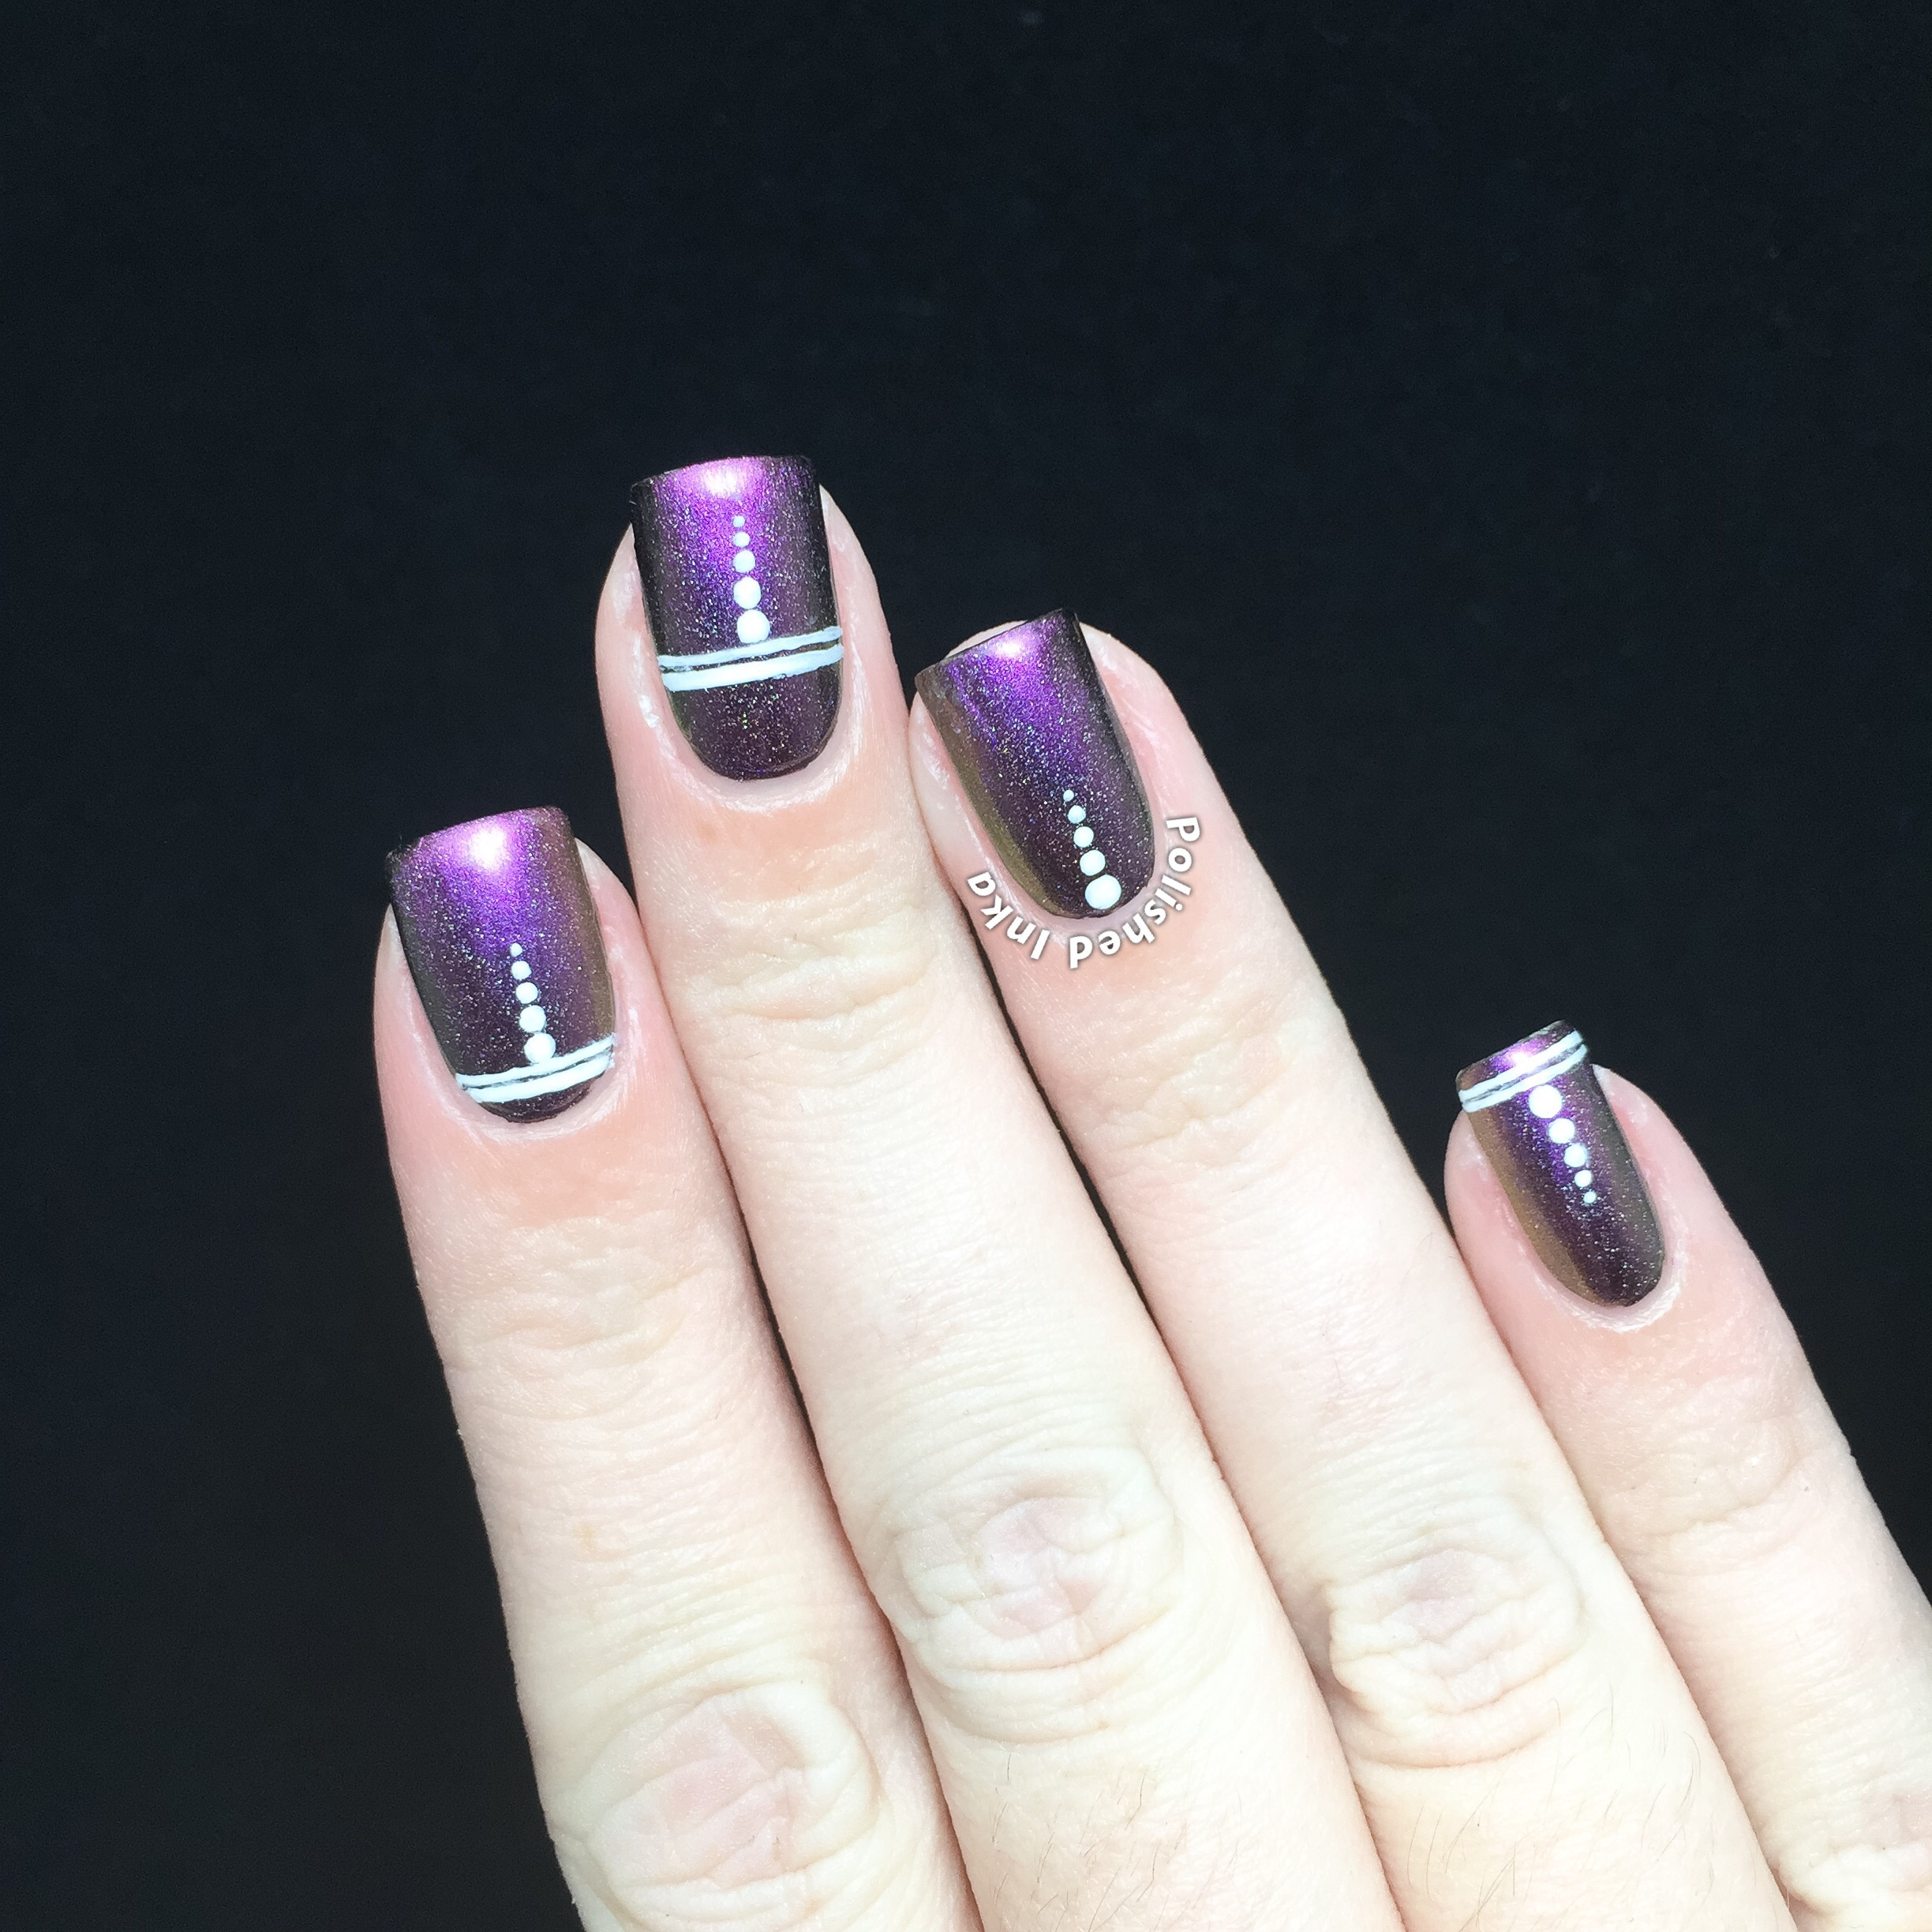 Polished Inka ILNP Cameo (H) Stripes and Dots Nail Art